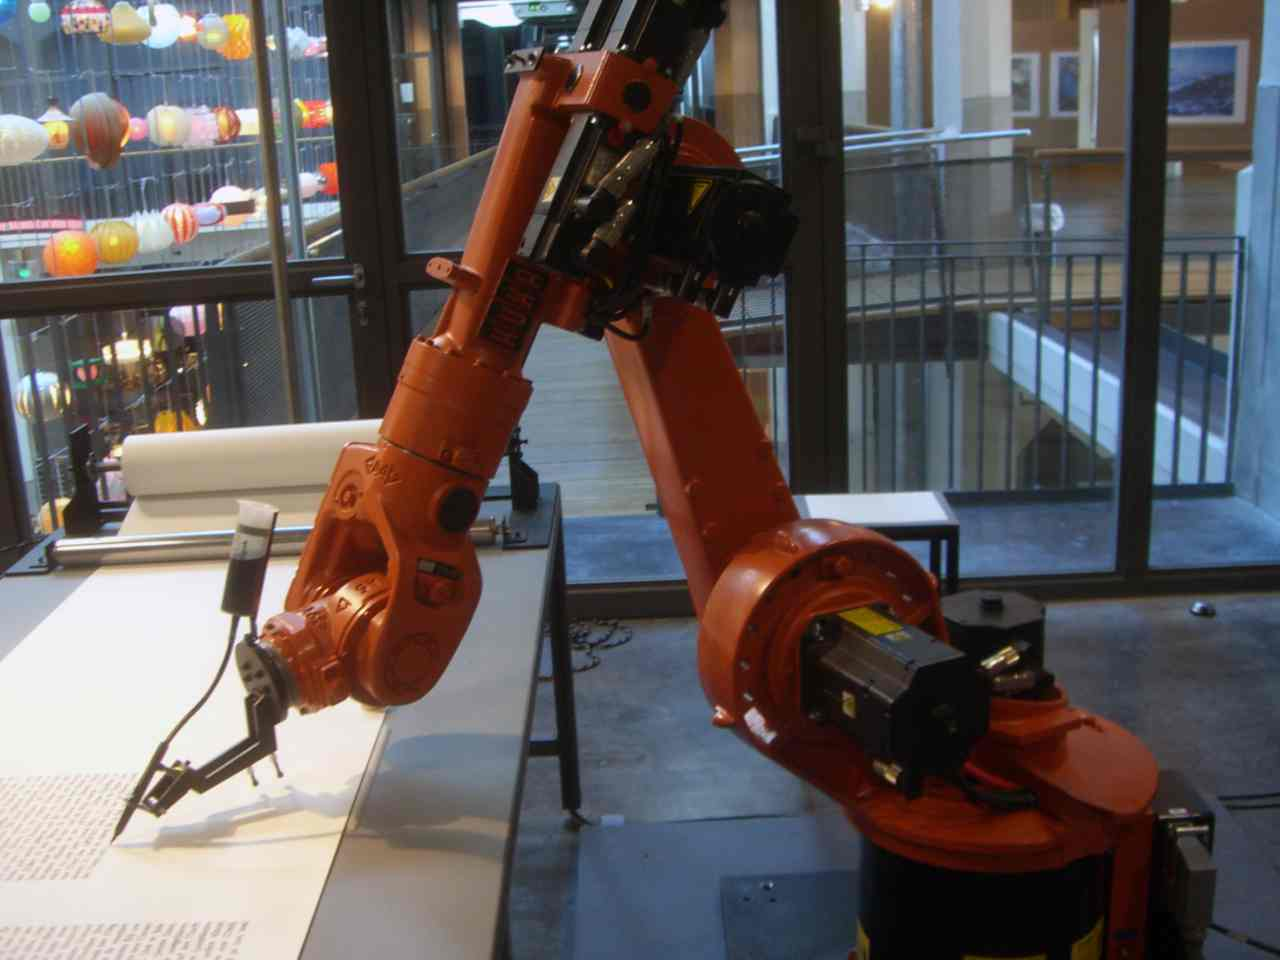 From pilots to brokers, 10 professions where robots could replace humans